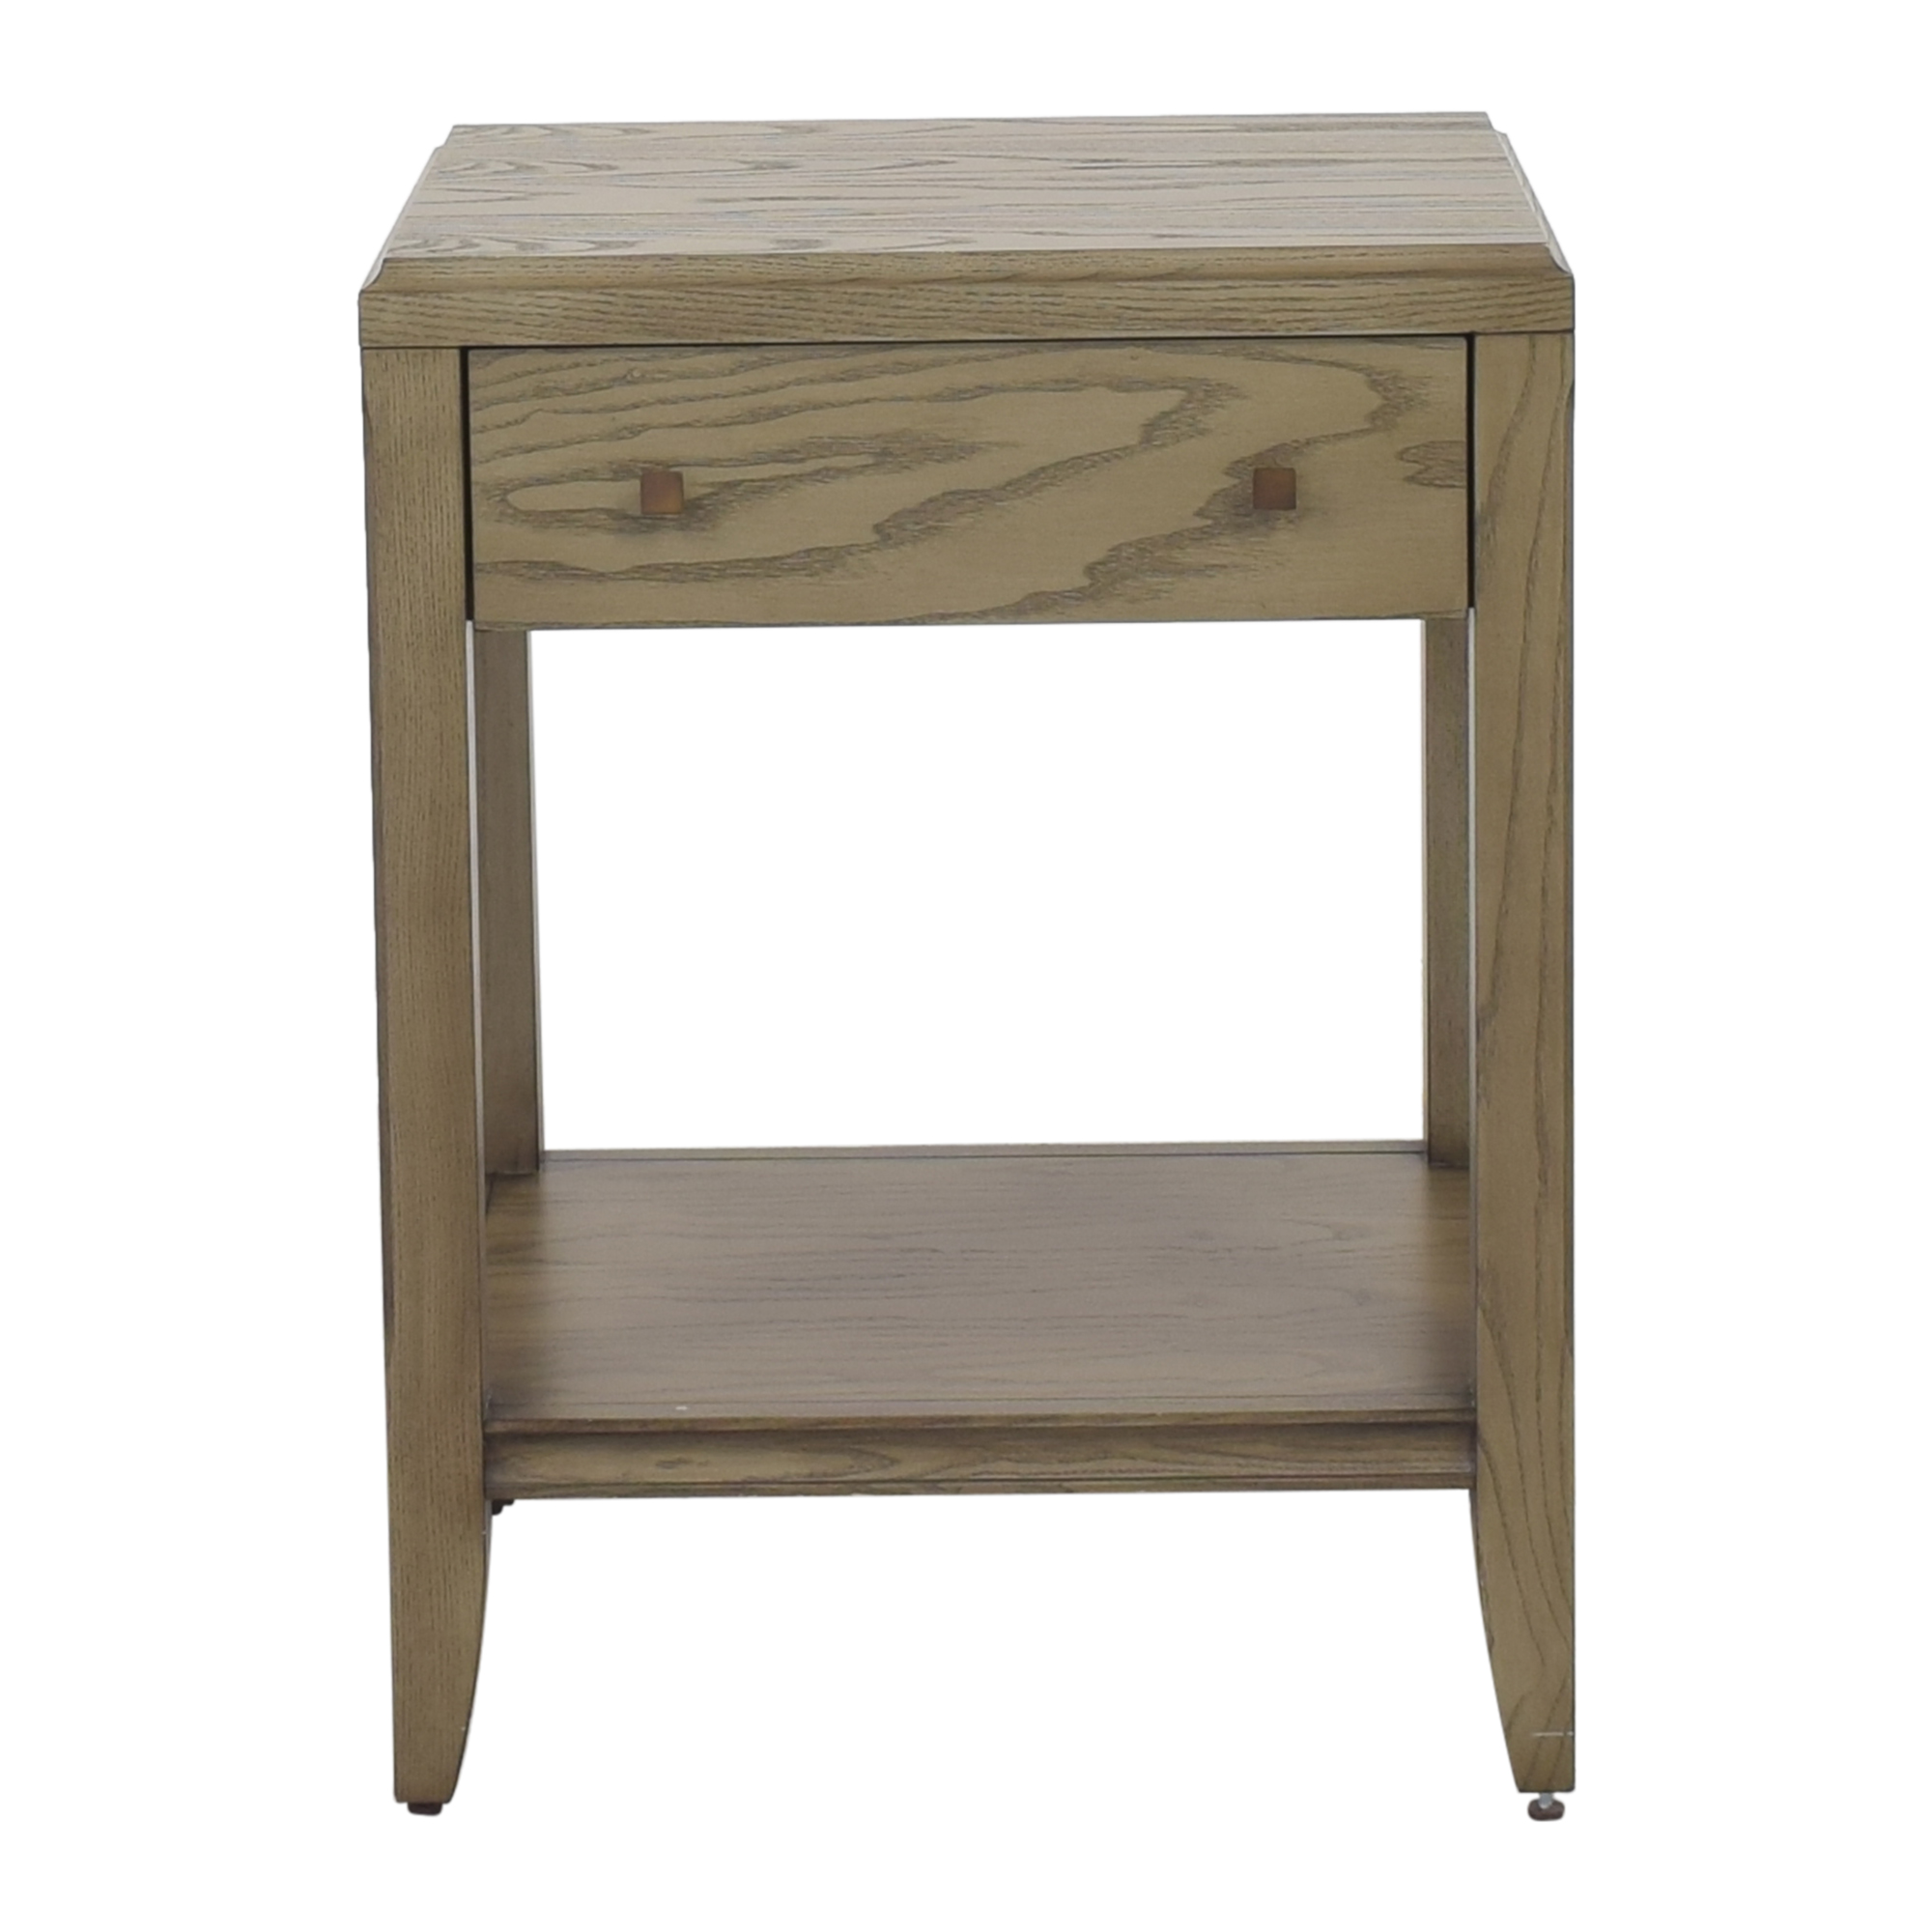 shop Mitchell Gold + Bob Williams Mitchell Gold + Bob Williams Pierce Small Side Table online